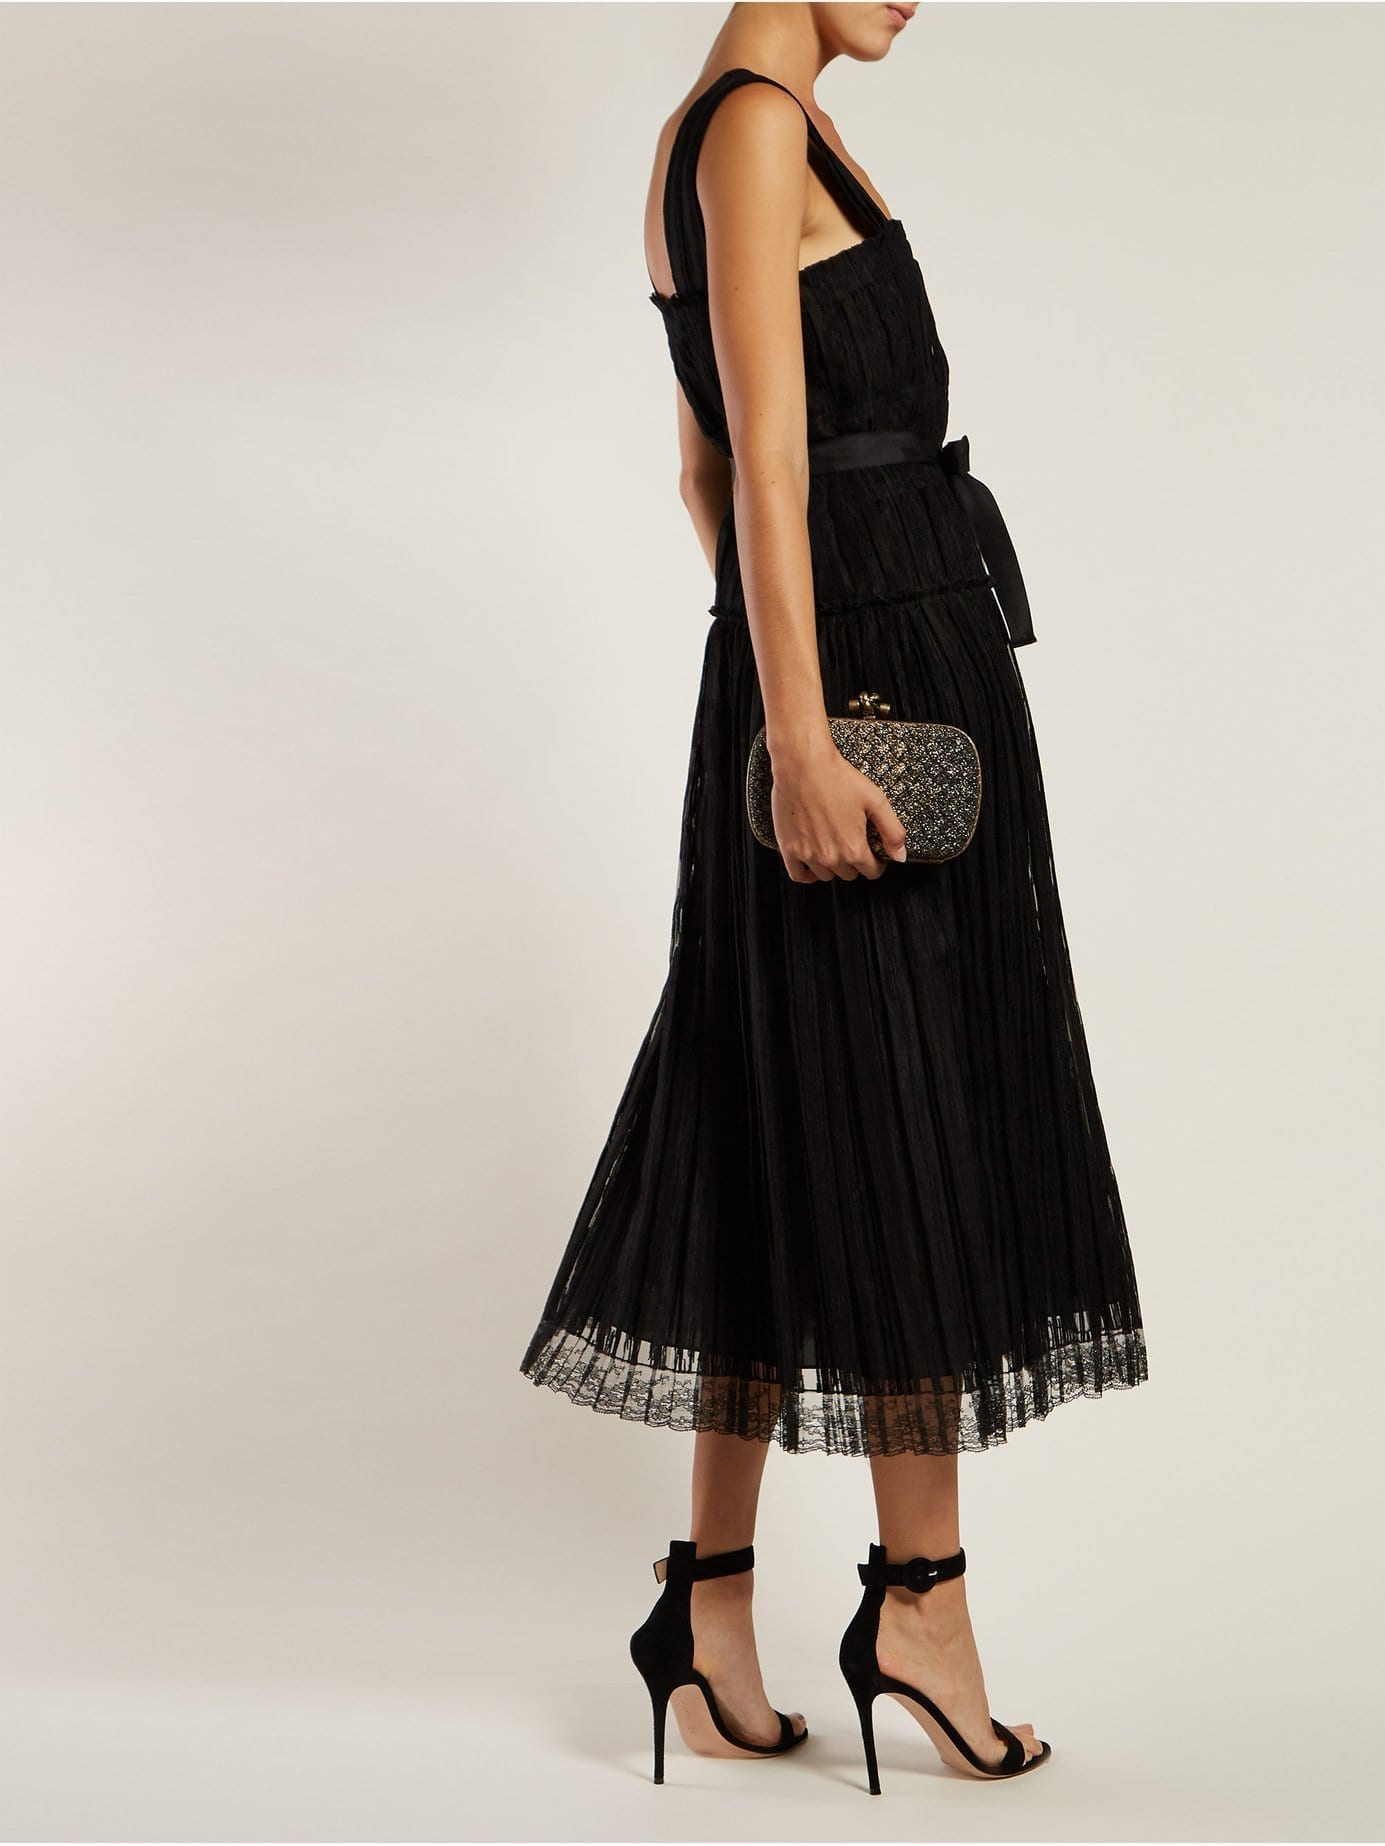 BOTTEGA VENETA Pleated Taffeta Midi Black Dress